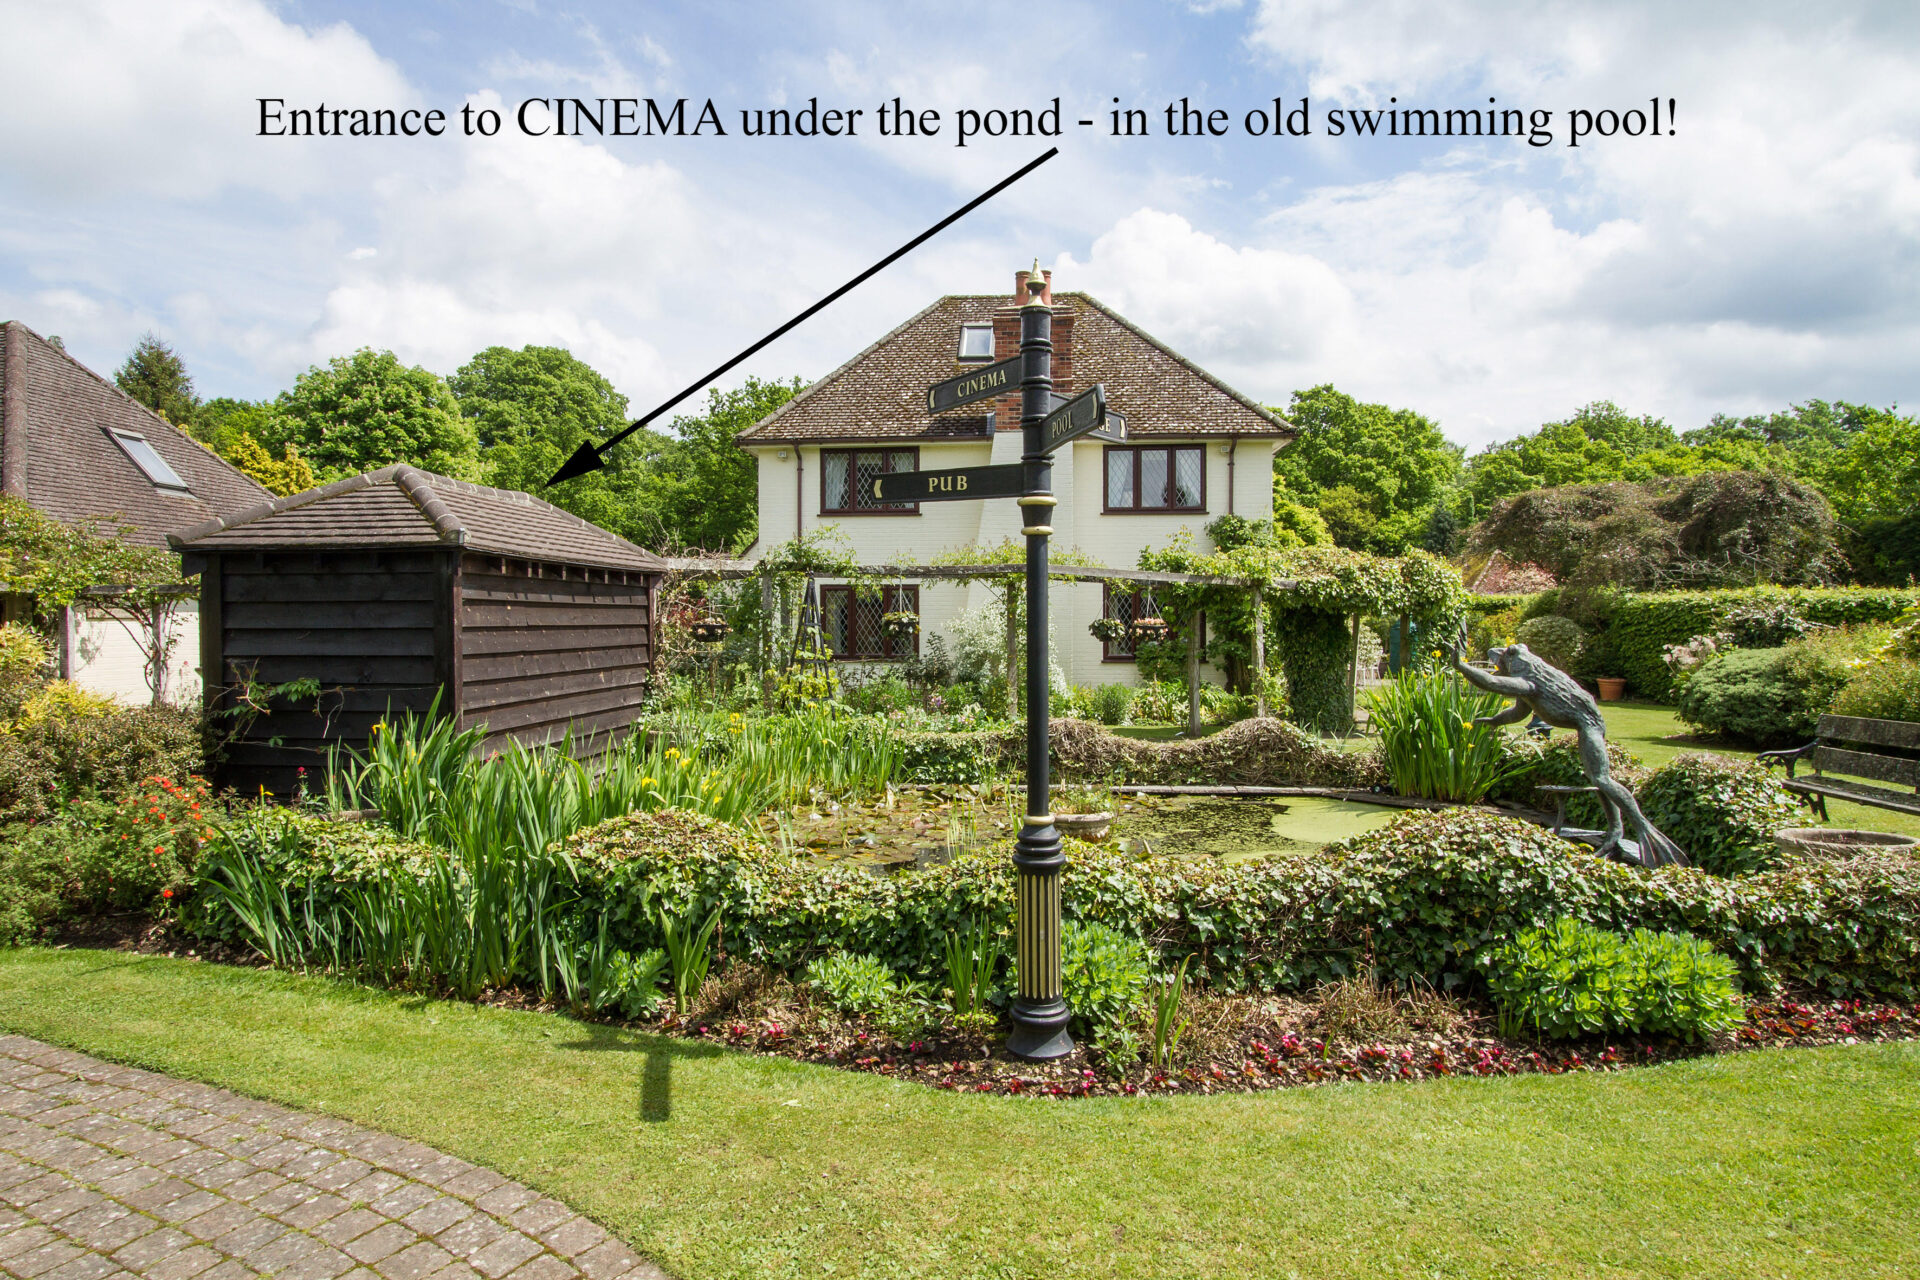 entrance to cinema garden pond